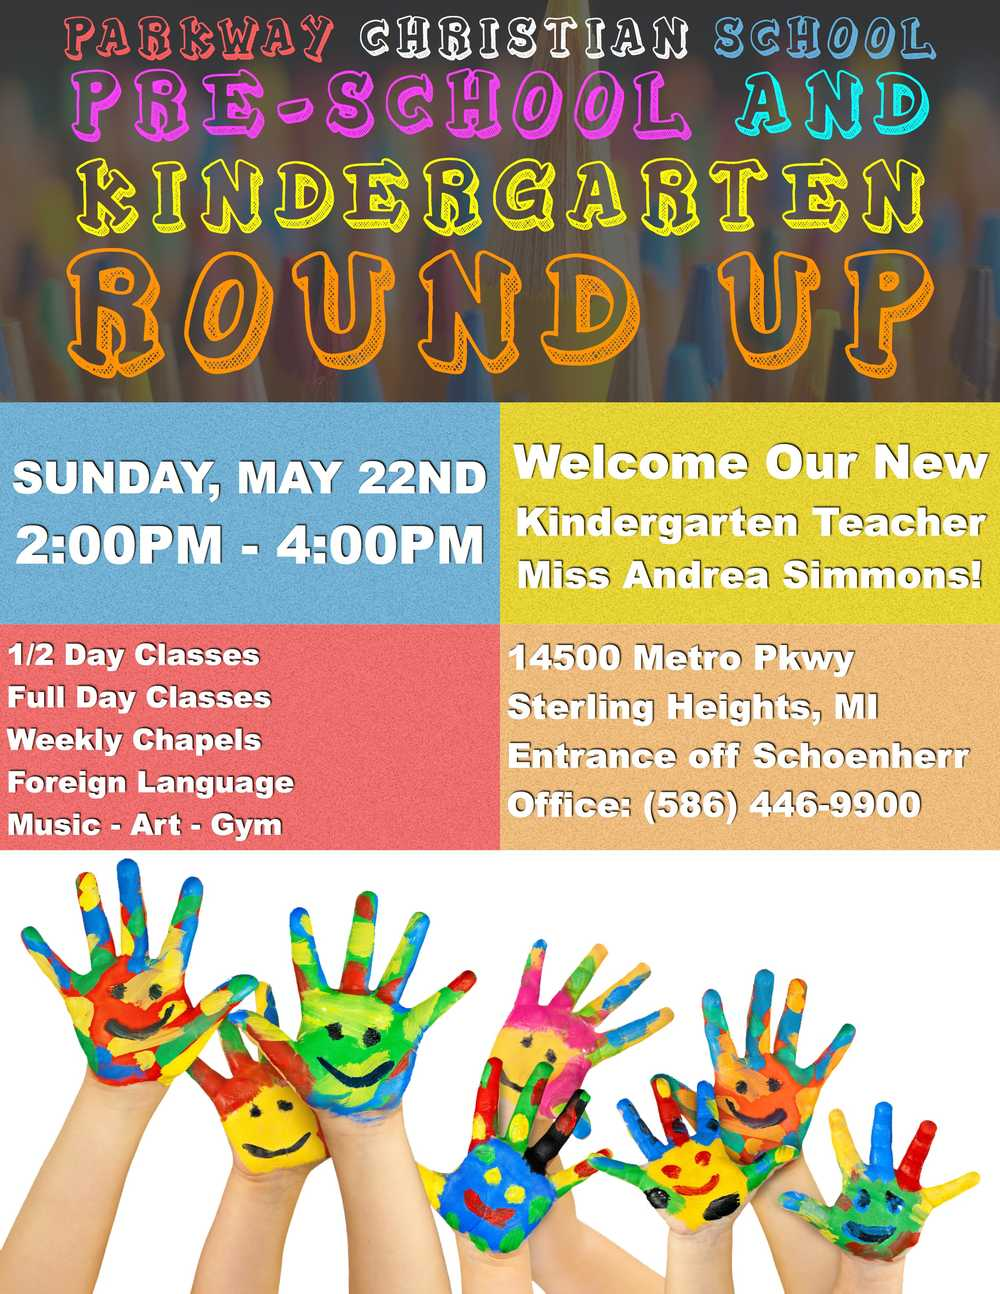 Pre-School & Kindergarten Round Up